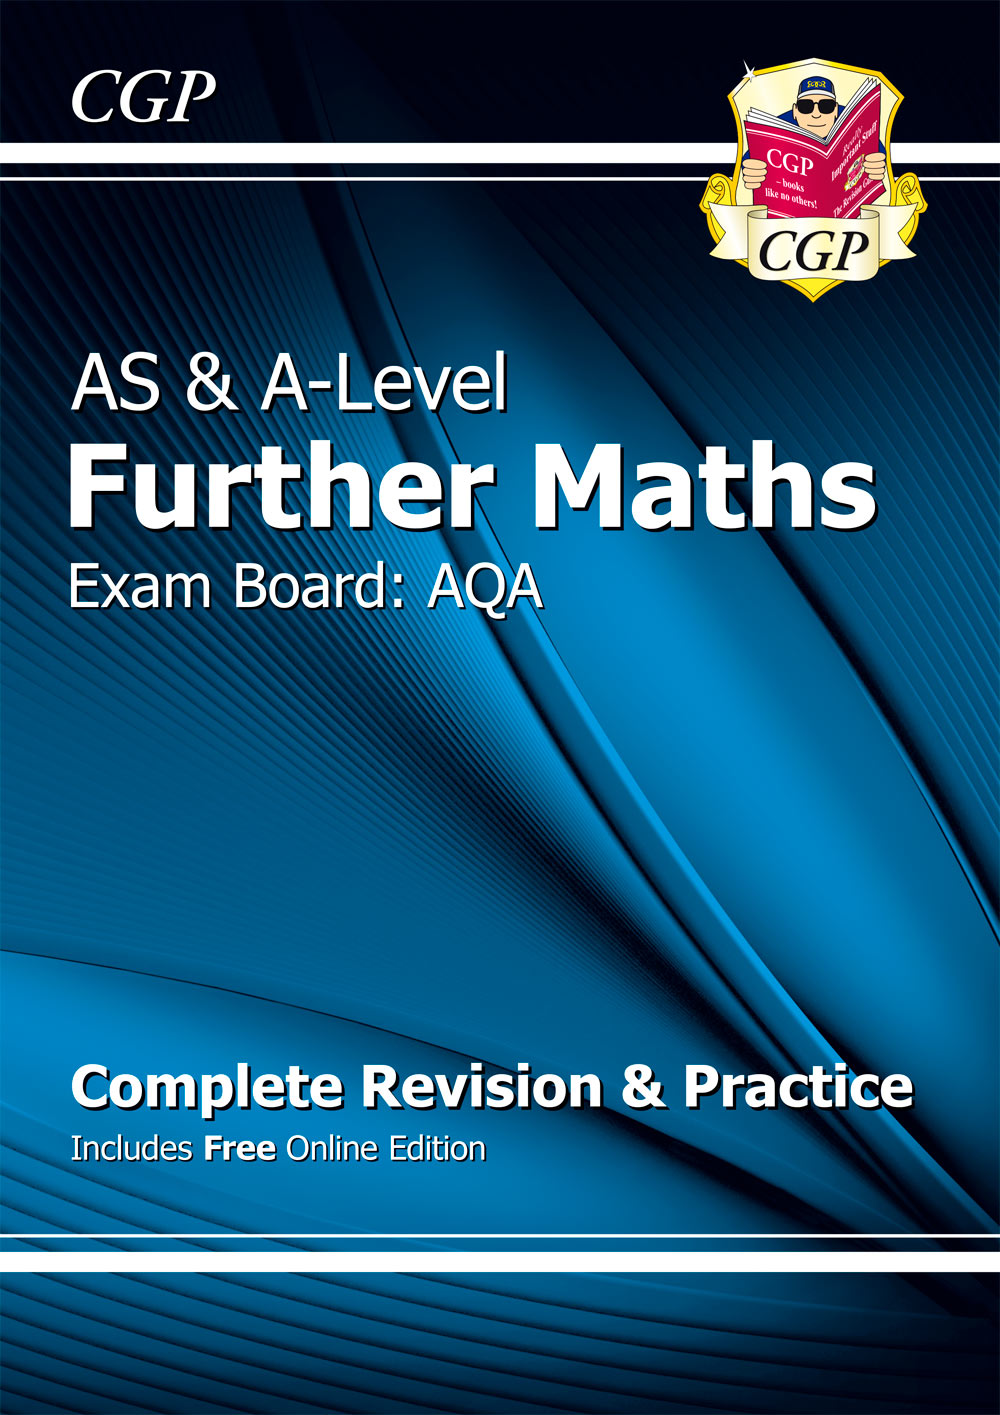 MFAR71 - AS & A-Level Further Maths for AQA: Complete Revision & Practice with Online Edition